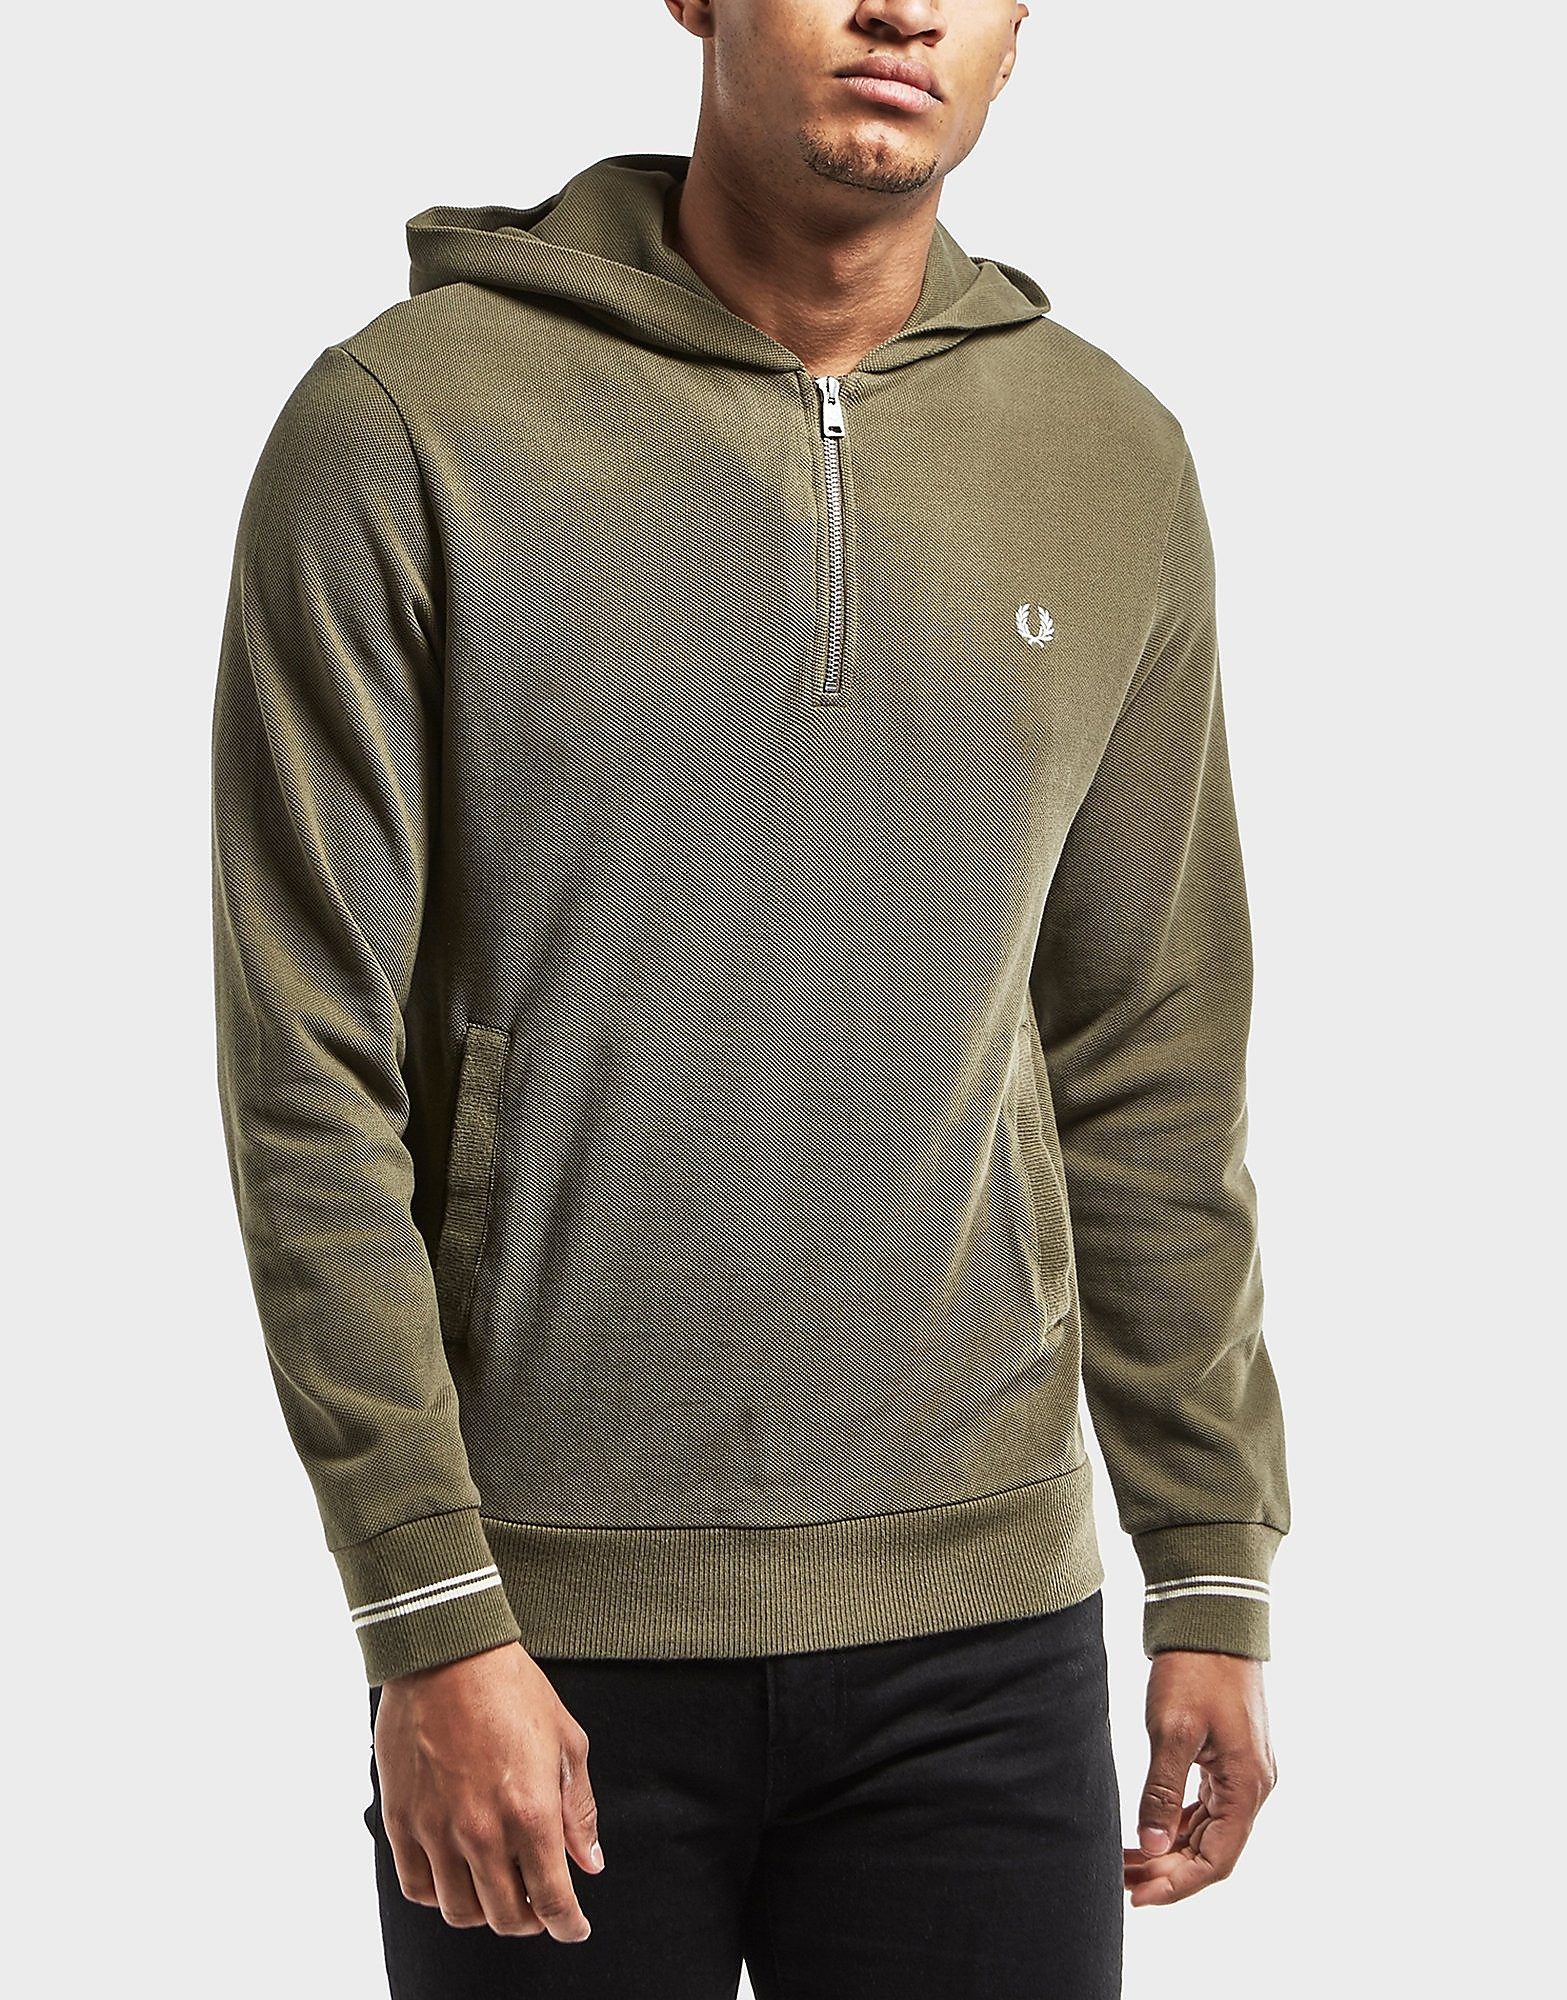 Fred Perry Pique Hoody - Exclusive